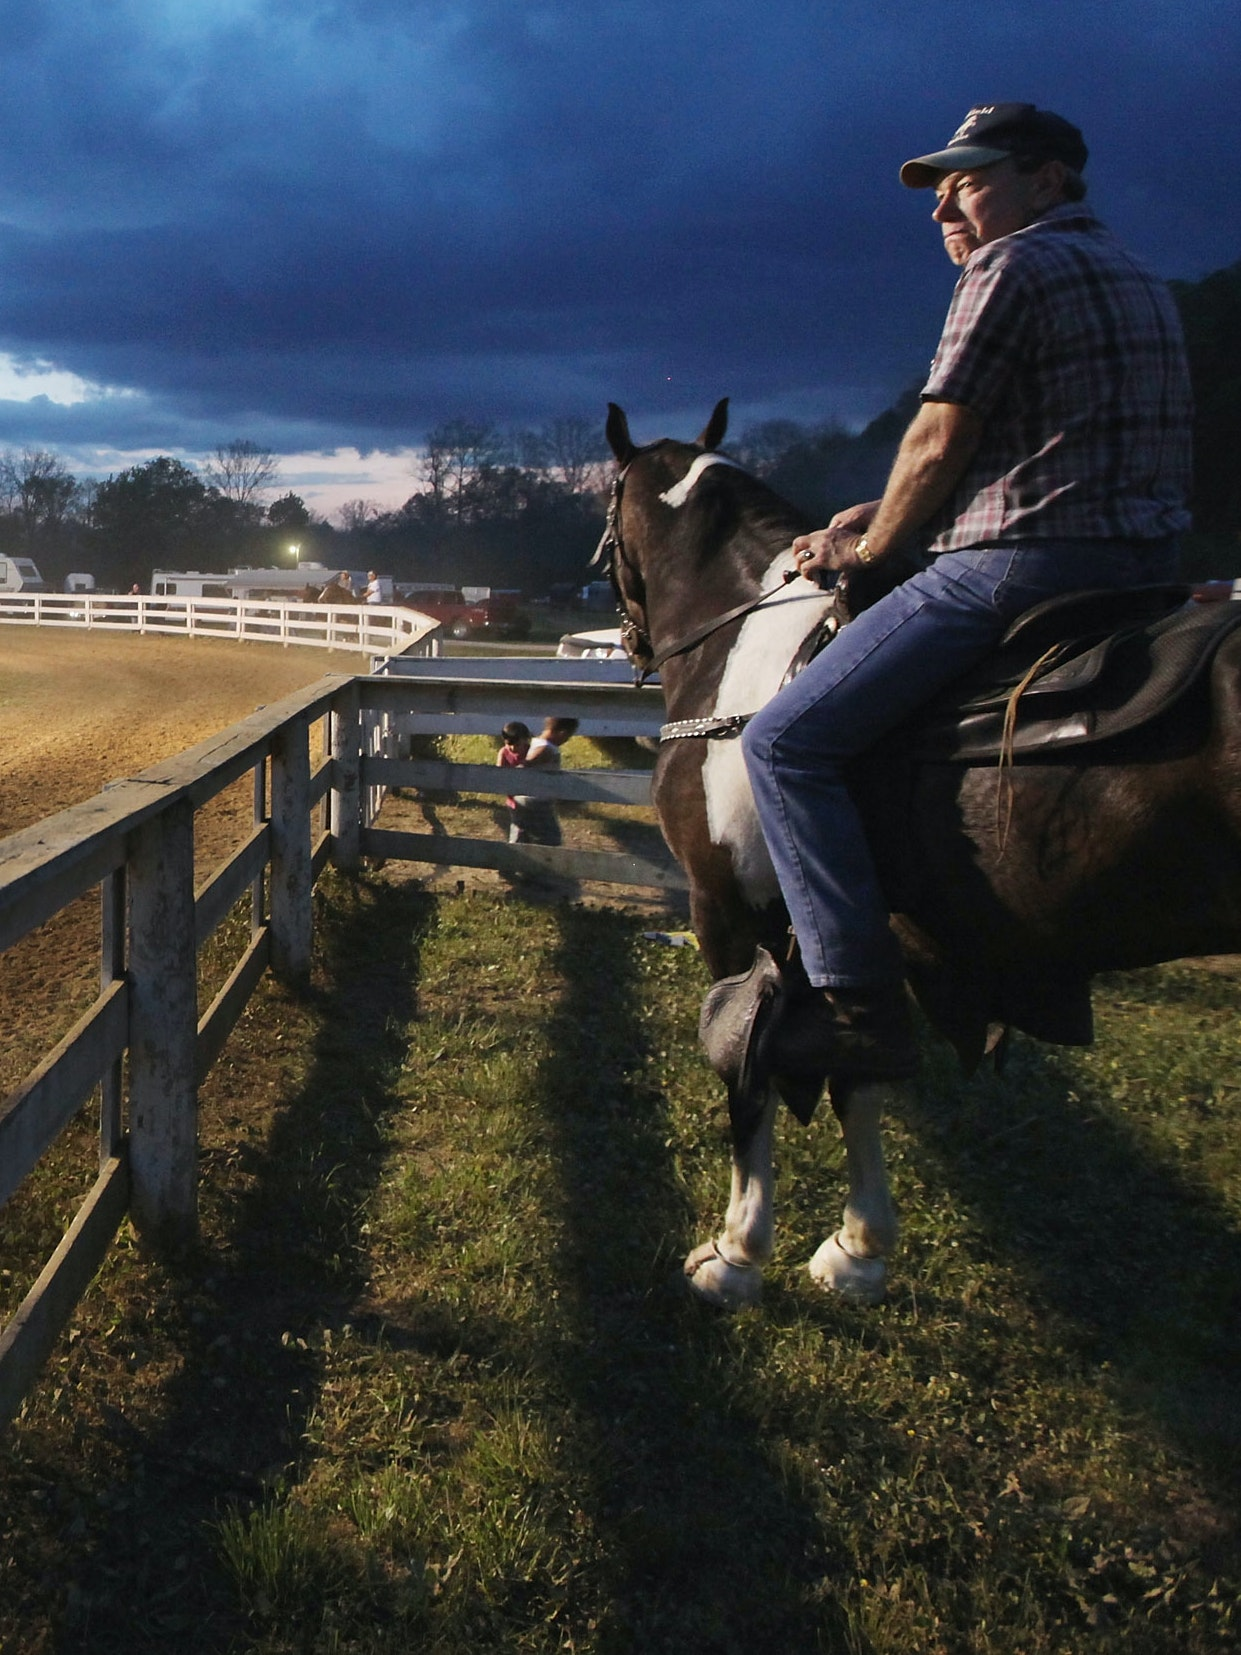 Horse riders gather at dusk at the Owsley County Saddle Club in Booneville, Kentucky.